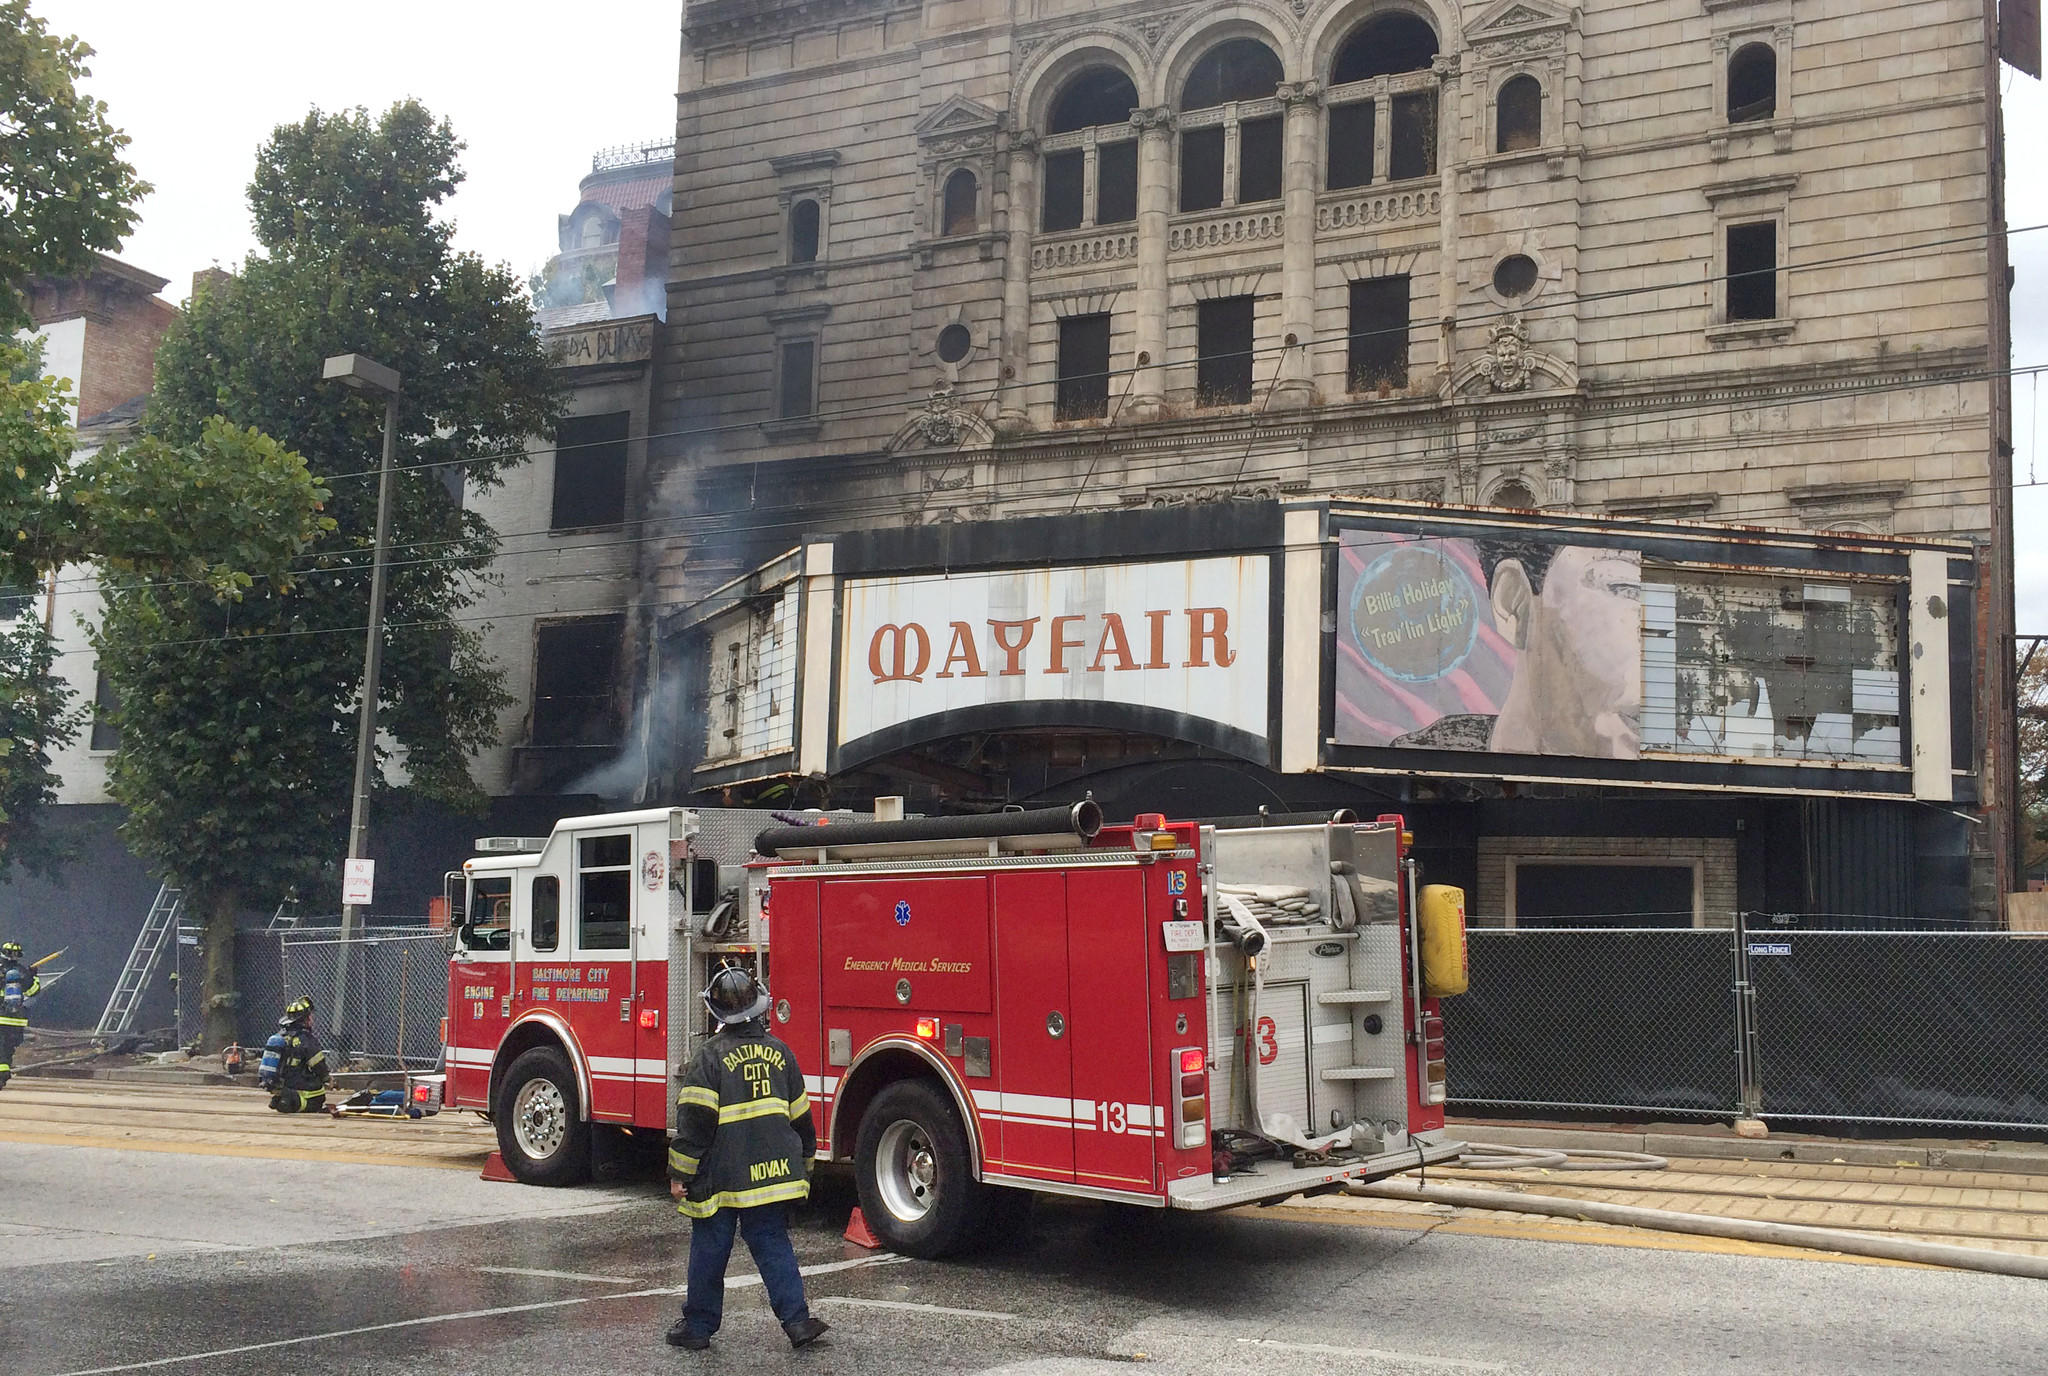 Working fire adjacent to the Mayfair Theatre